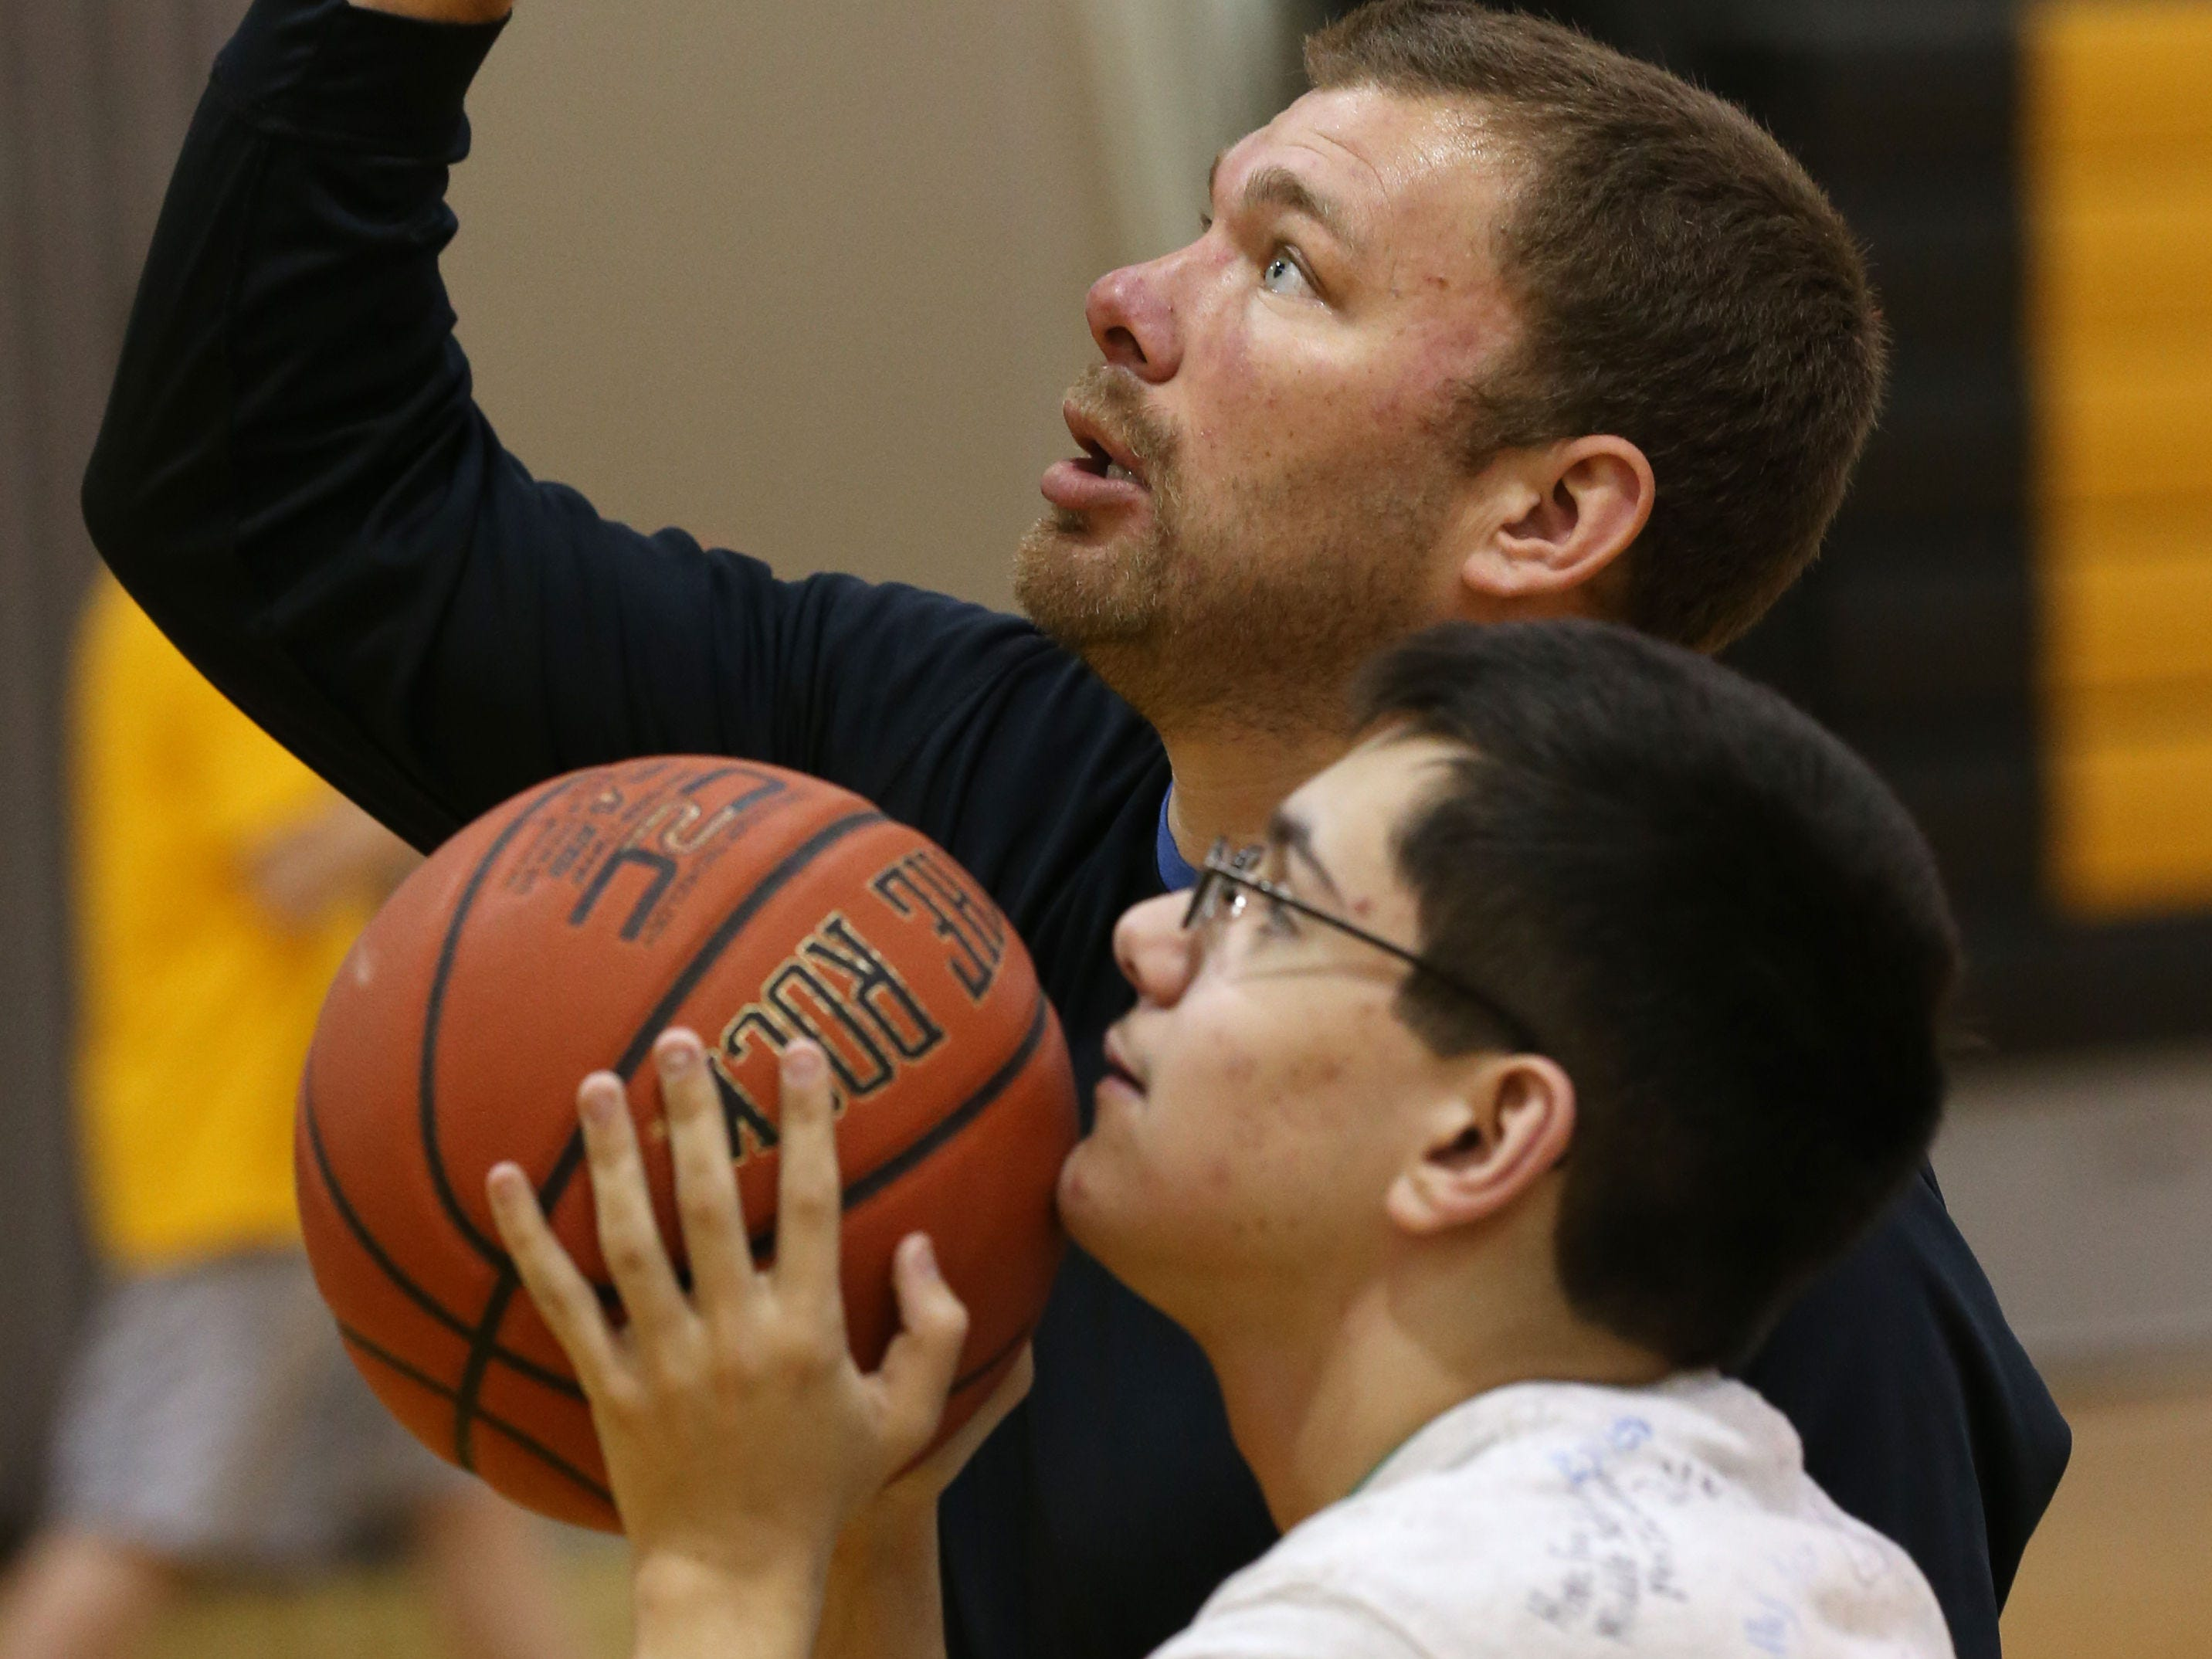 Peter Stakos gets a pointer from Asstistant Coach Cory Quinter, during the second practice for Honeoye Falls-Lima's unified basketball team.